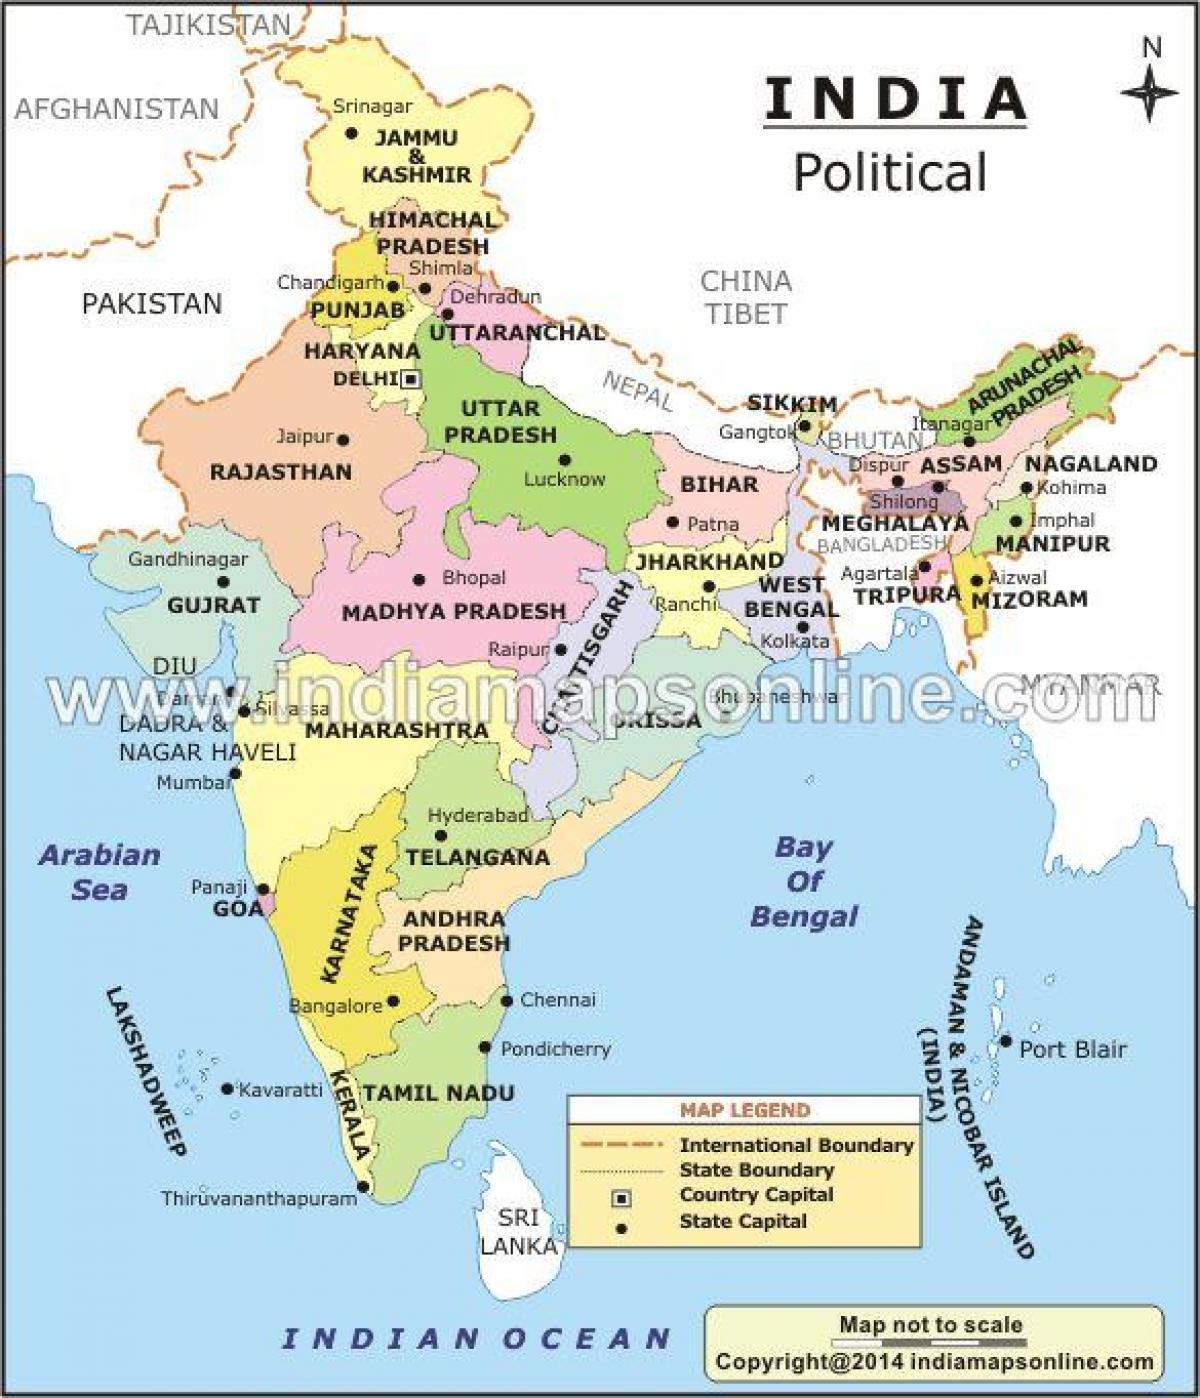 India map with states capitals and union territories - Map of India on states and their capitals, india pondicherry beaches, south us region states and capitals, india south asia landforms map, europe map with capitals, india and south asia physical map, india and surrounding country map, south east asia map countries and capitals, india and myanmar, united states political map with capitals, latest india map state capitals, map of the states and capitals, blank canada map with provinces and capitals, india and weapons of mass destruction, india under british rule map, map of 50 states and capitals, political map states and capitals, map of nigeria showing 36 states and capitals, asia map with country names and capitals,